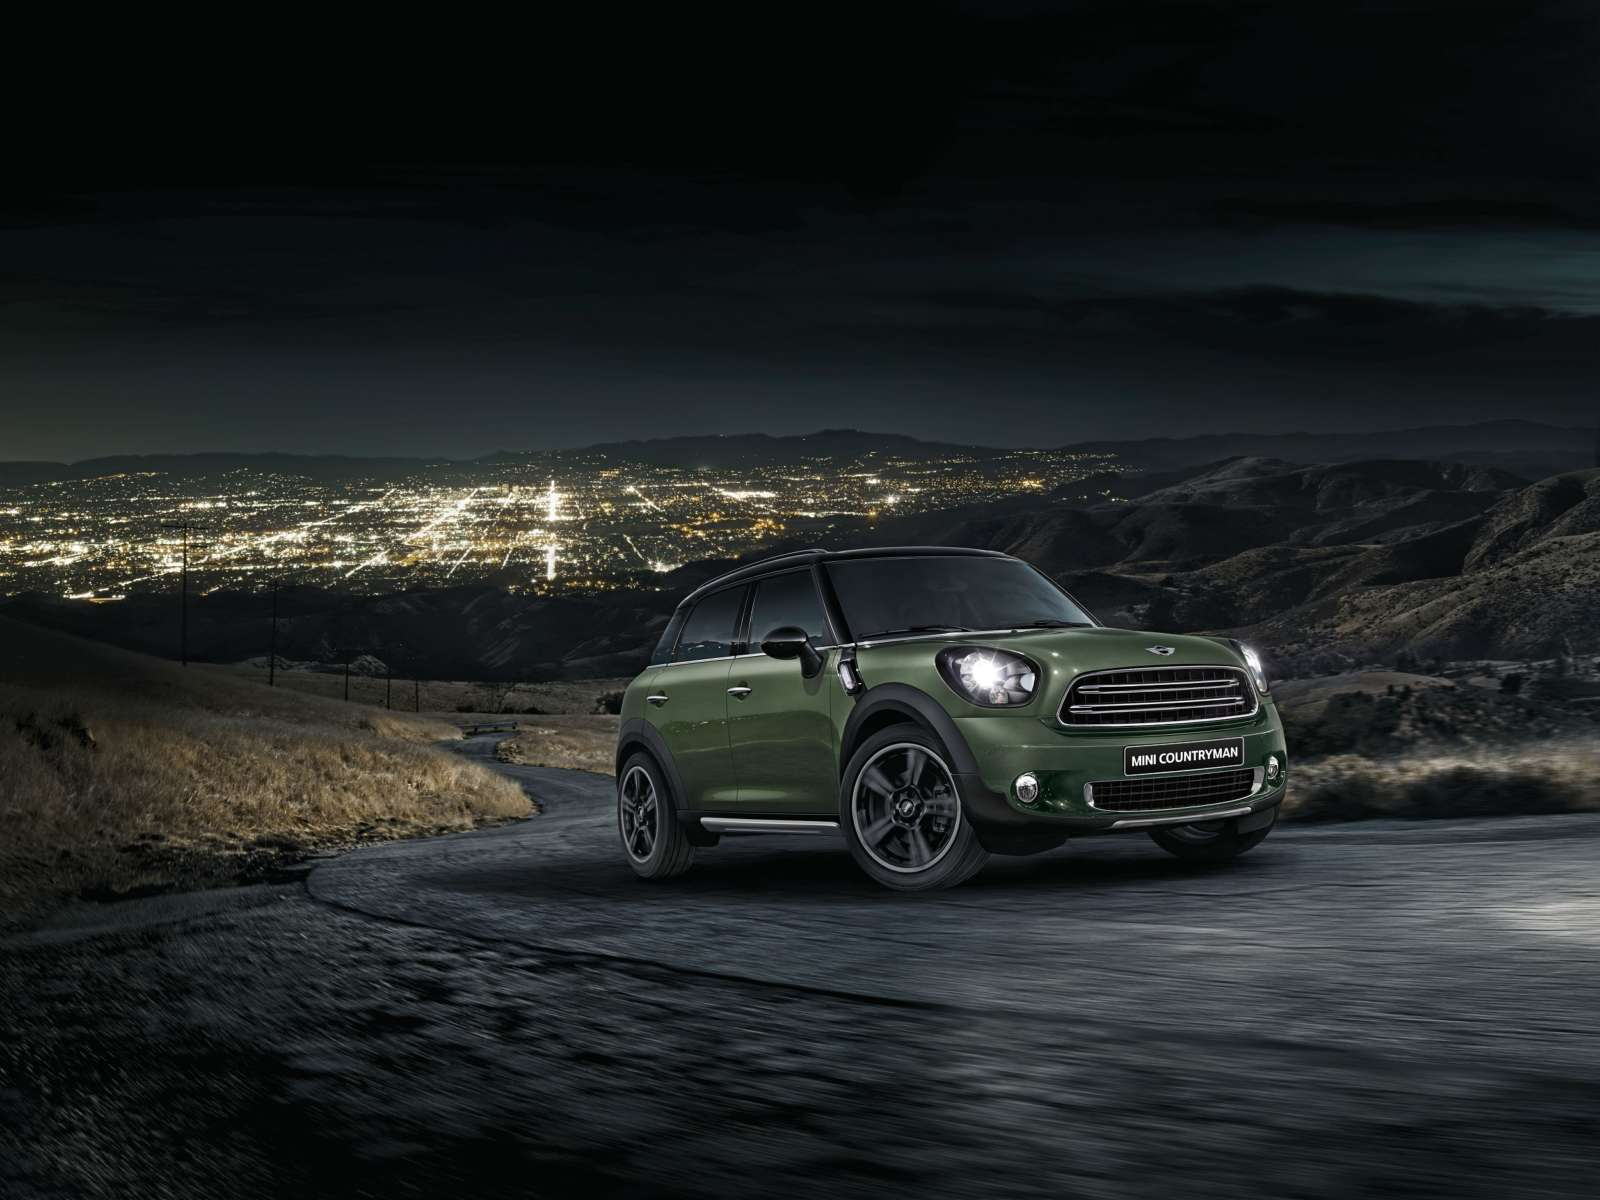 new mini countryman launched in india starts at inr 3 650 000 motoroids. Black Bedroom Furniture Sets. Home Design Ideas